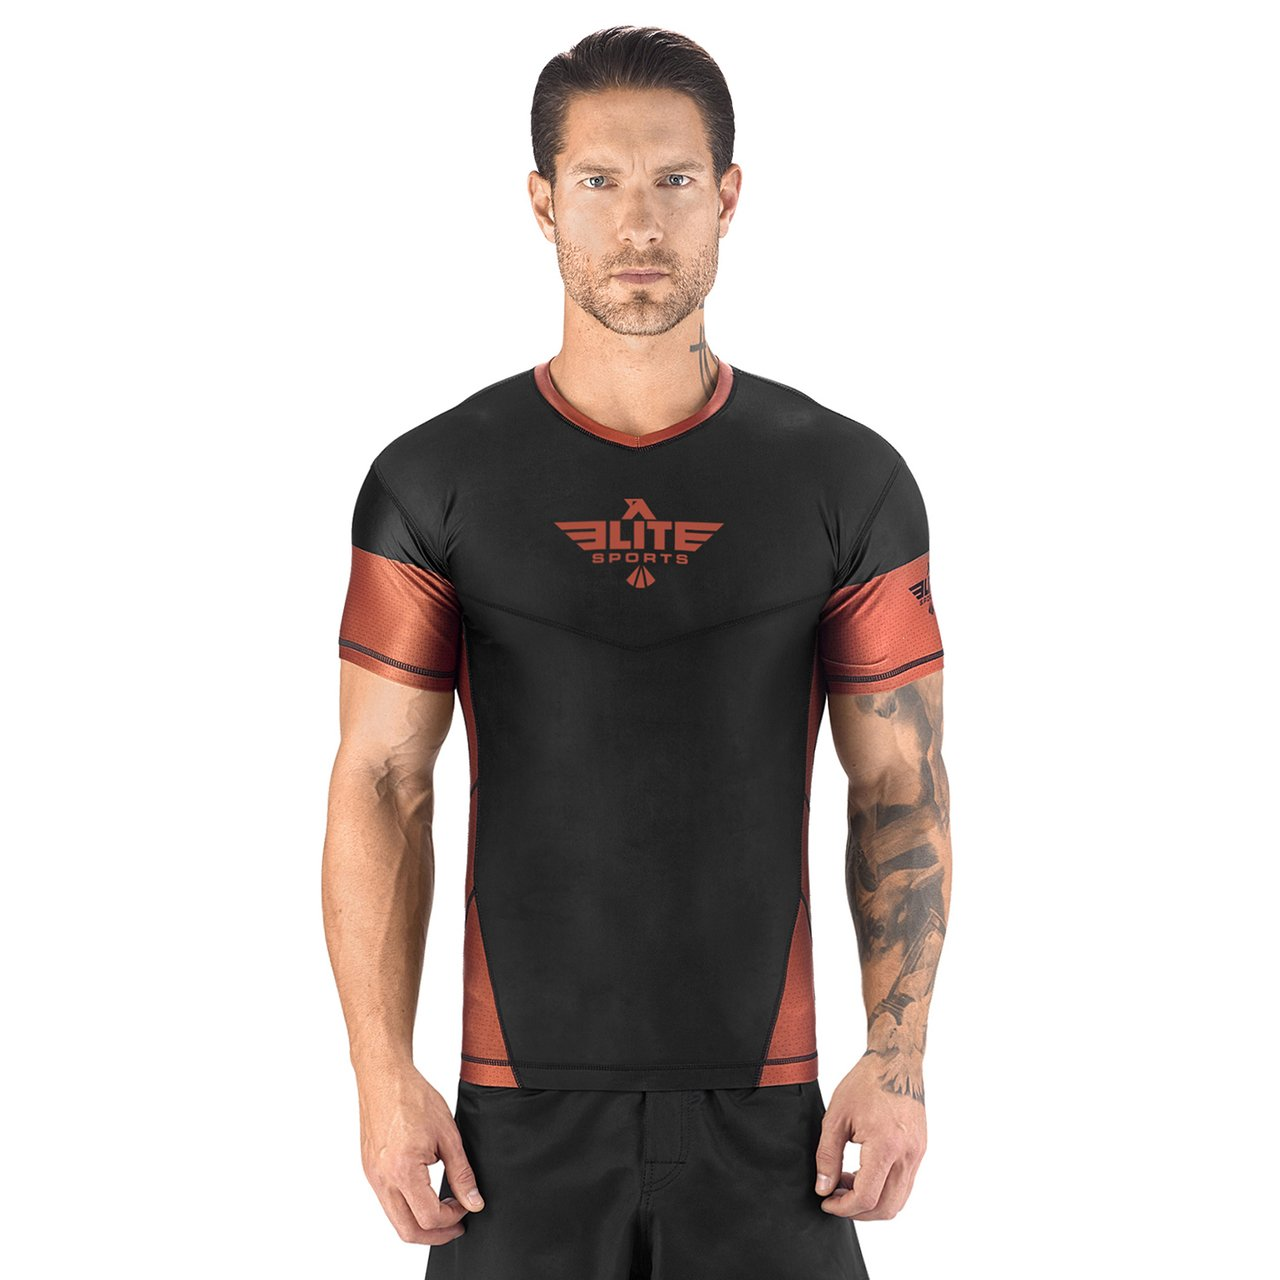 Elite Sports Honey Comb Sublimation Black/Brown Short Sleeve MMA Rash Guard